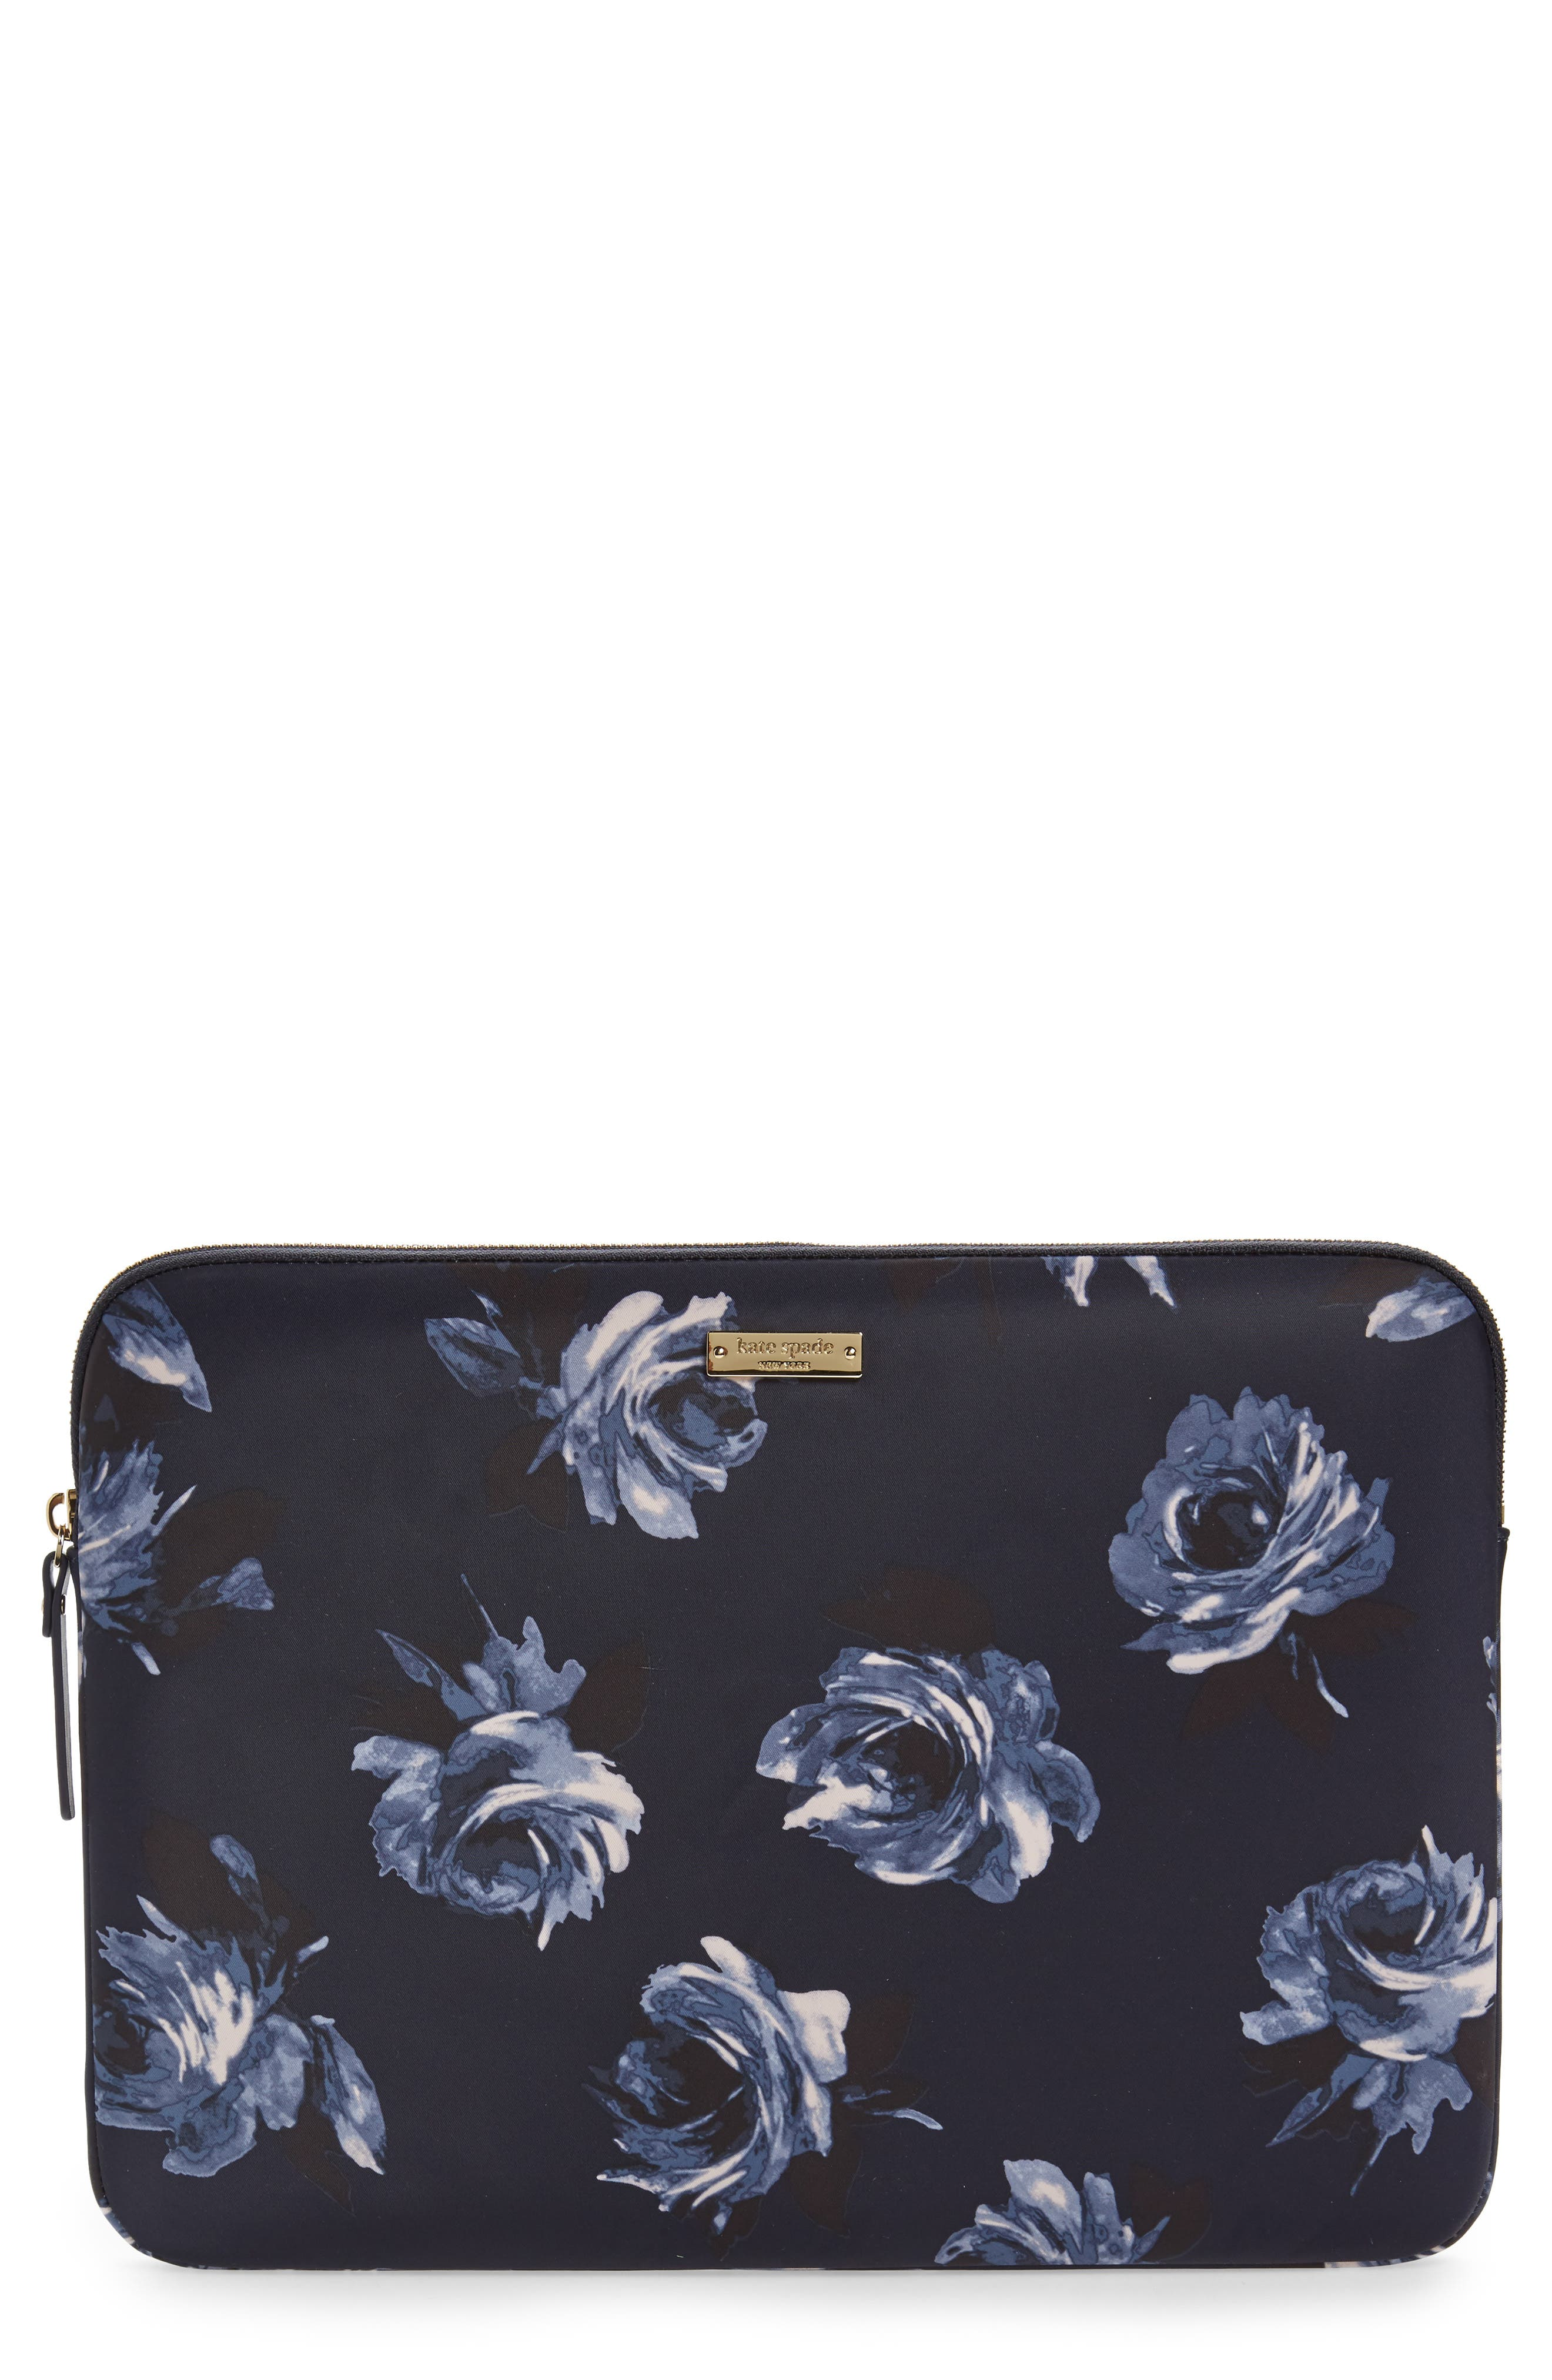 night rose 13-Inch laptop sleeve,                             Main thumbnail 1, color,                             400